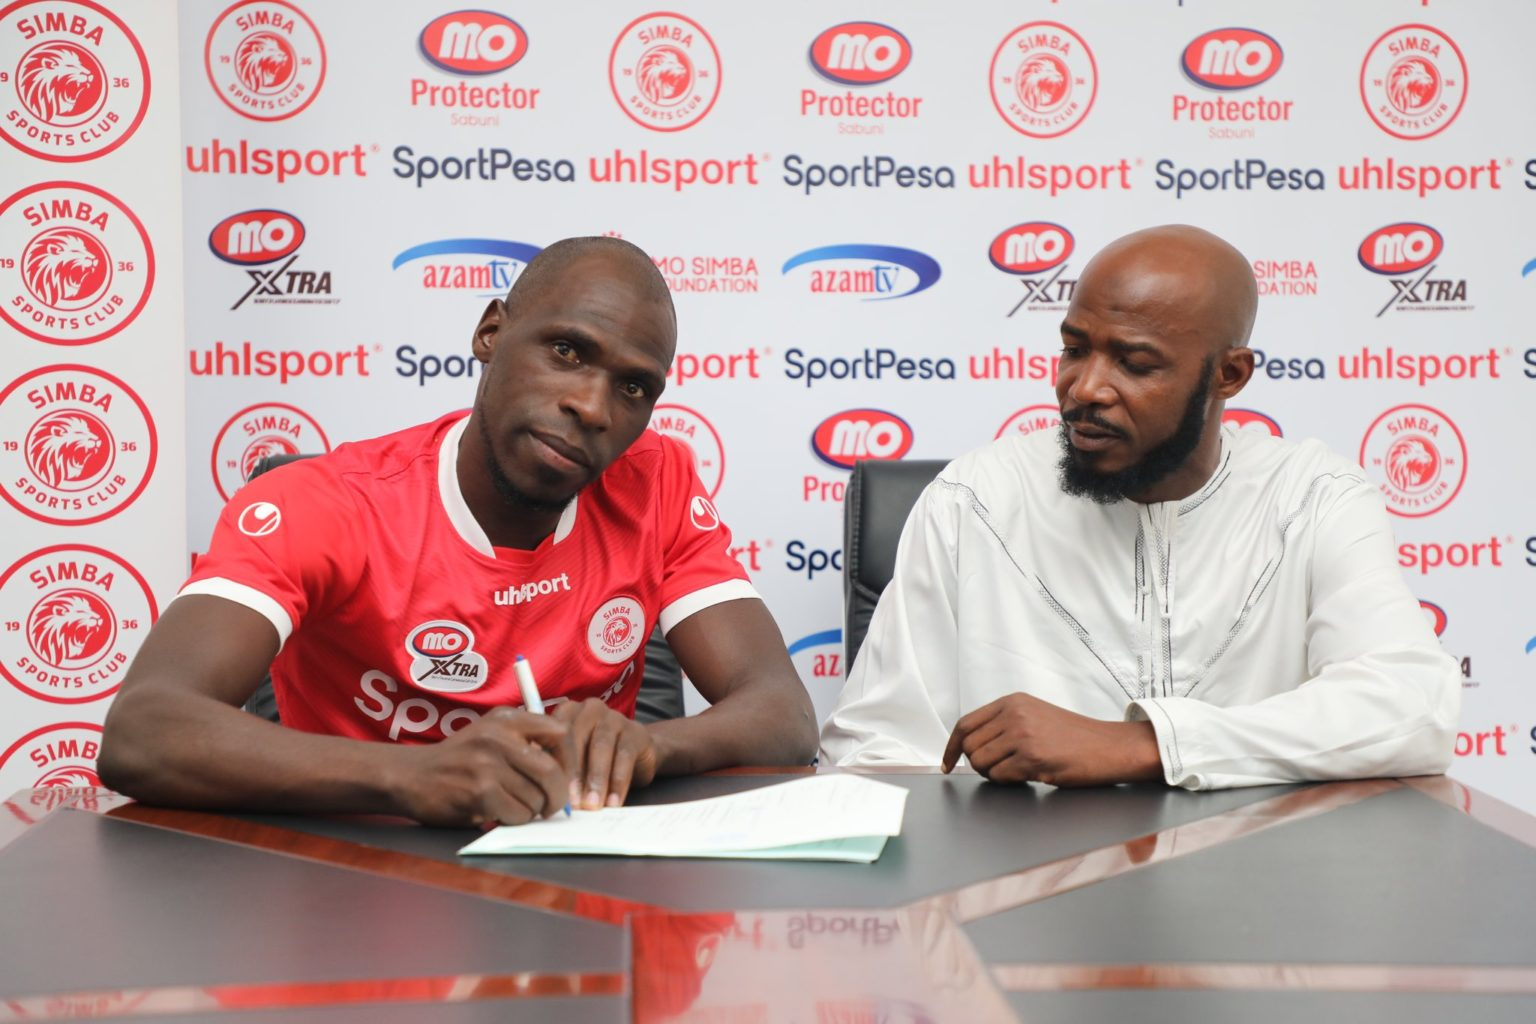 'Old' Joash Onyango shaves clean as he signs Simba contract